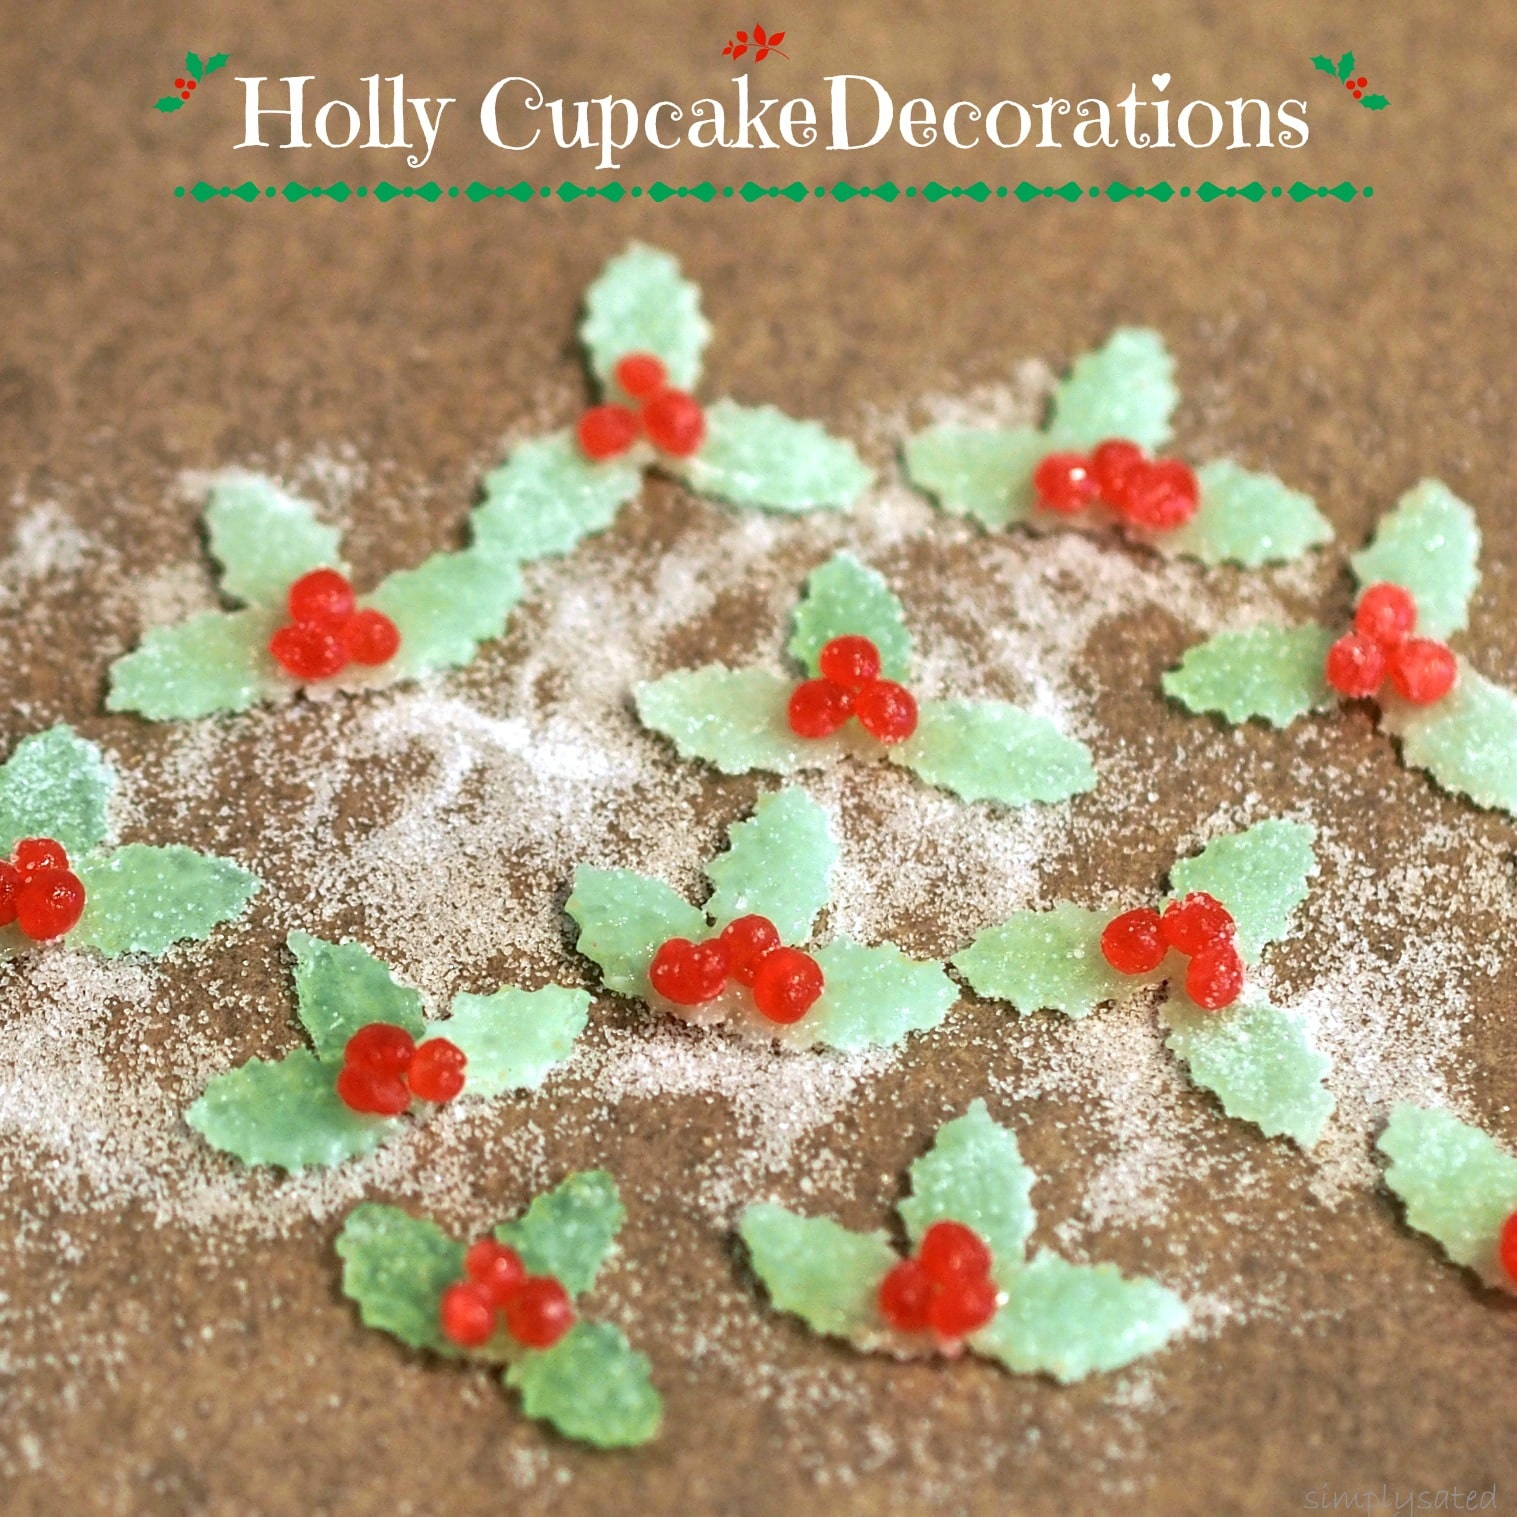 Holly Candy Decorations made with JuJu Candy, Dots Candy or Gumdrops rolled flat & cut into shapes. Cake, cupcake & cookie decorating has never been easier. Simply Sated